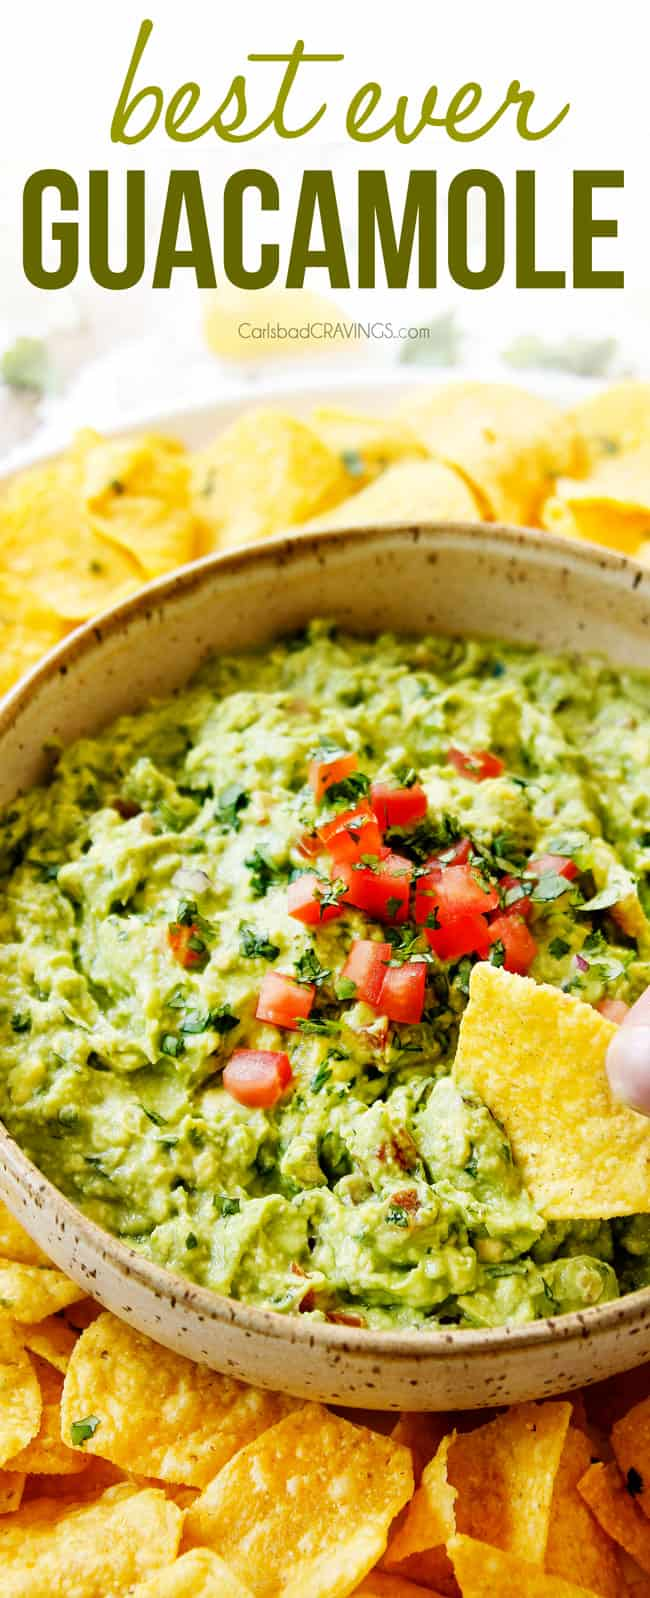 showing how to eat homemade guacamole by dipping a chip into the guacamole in a tan bowl surrounded by tortilla chips